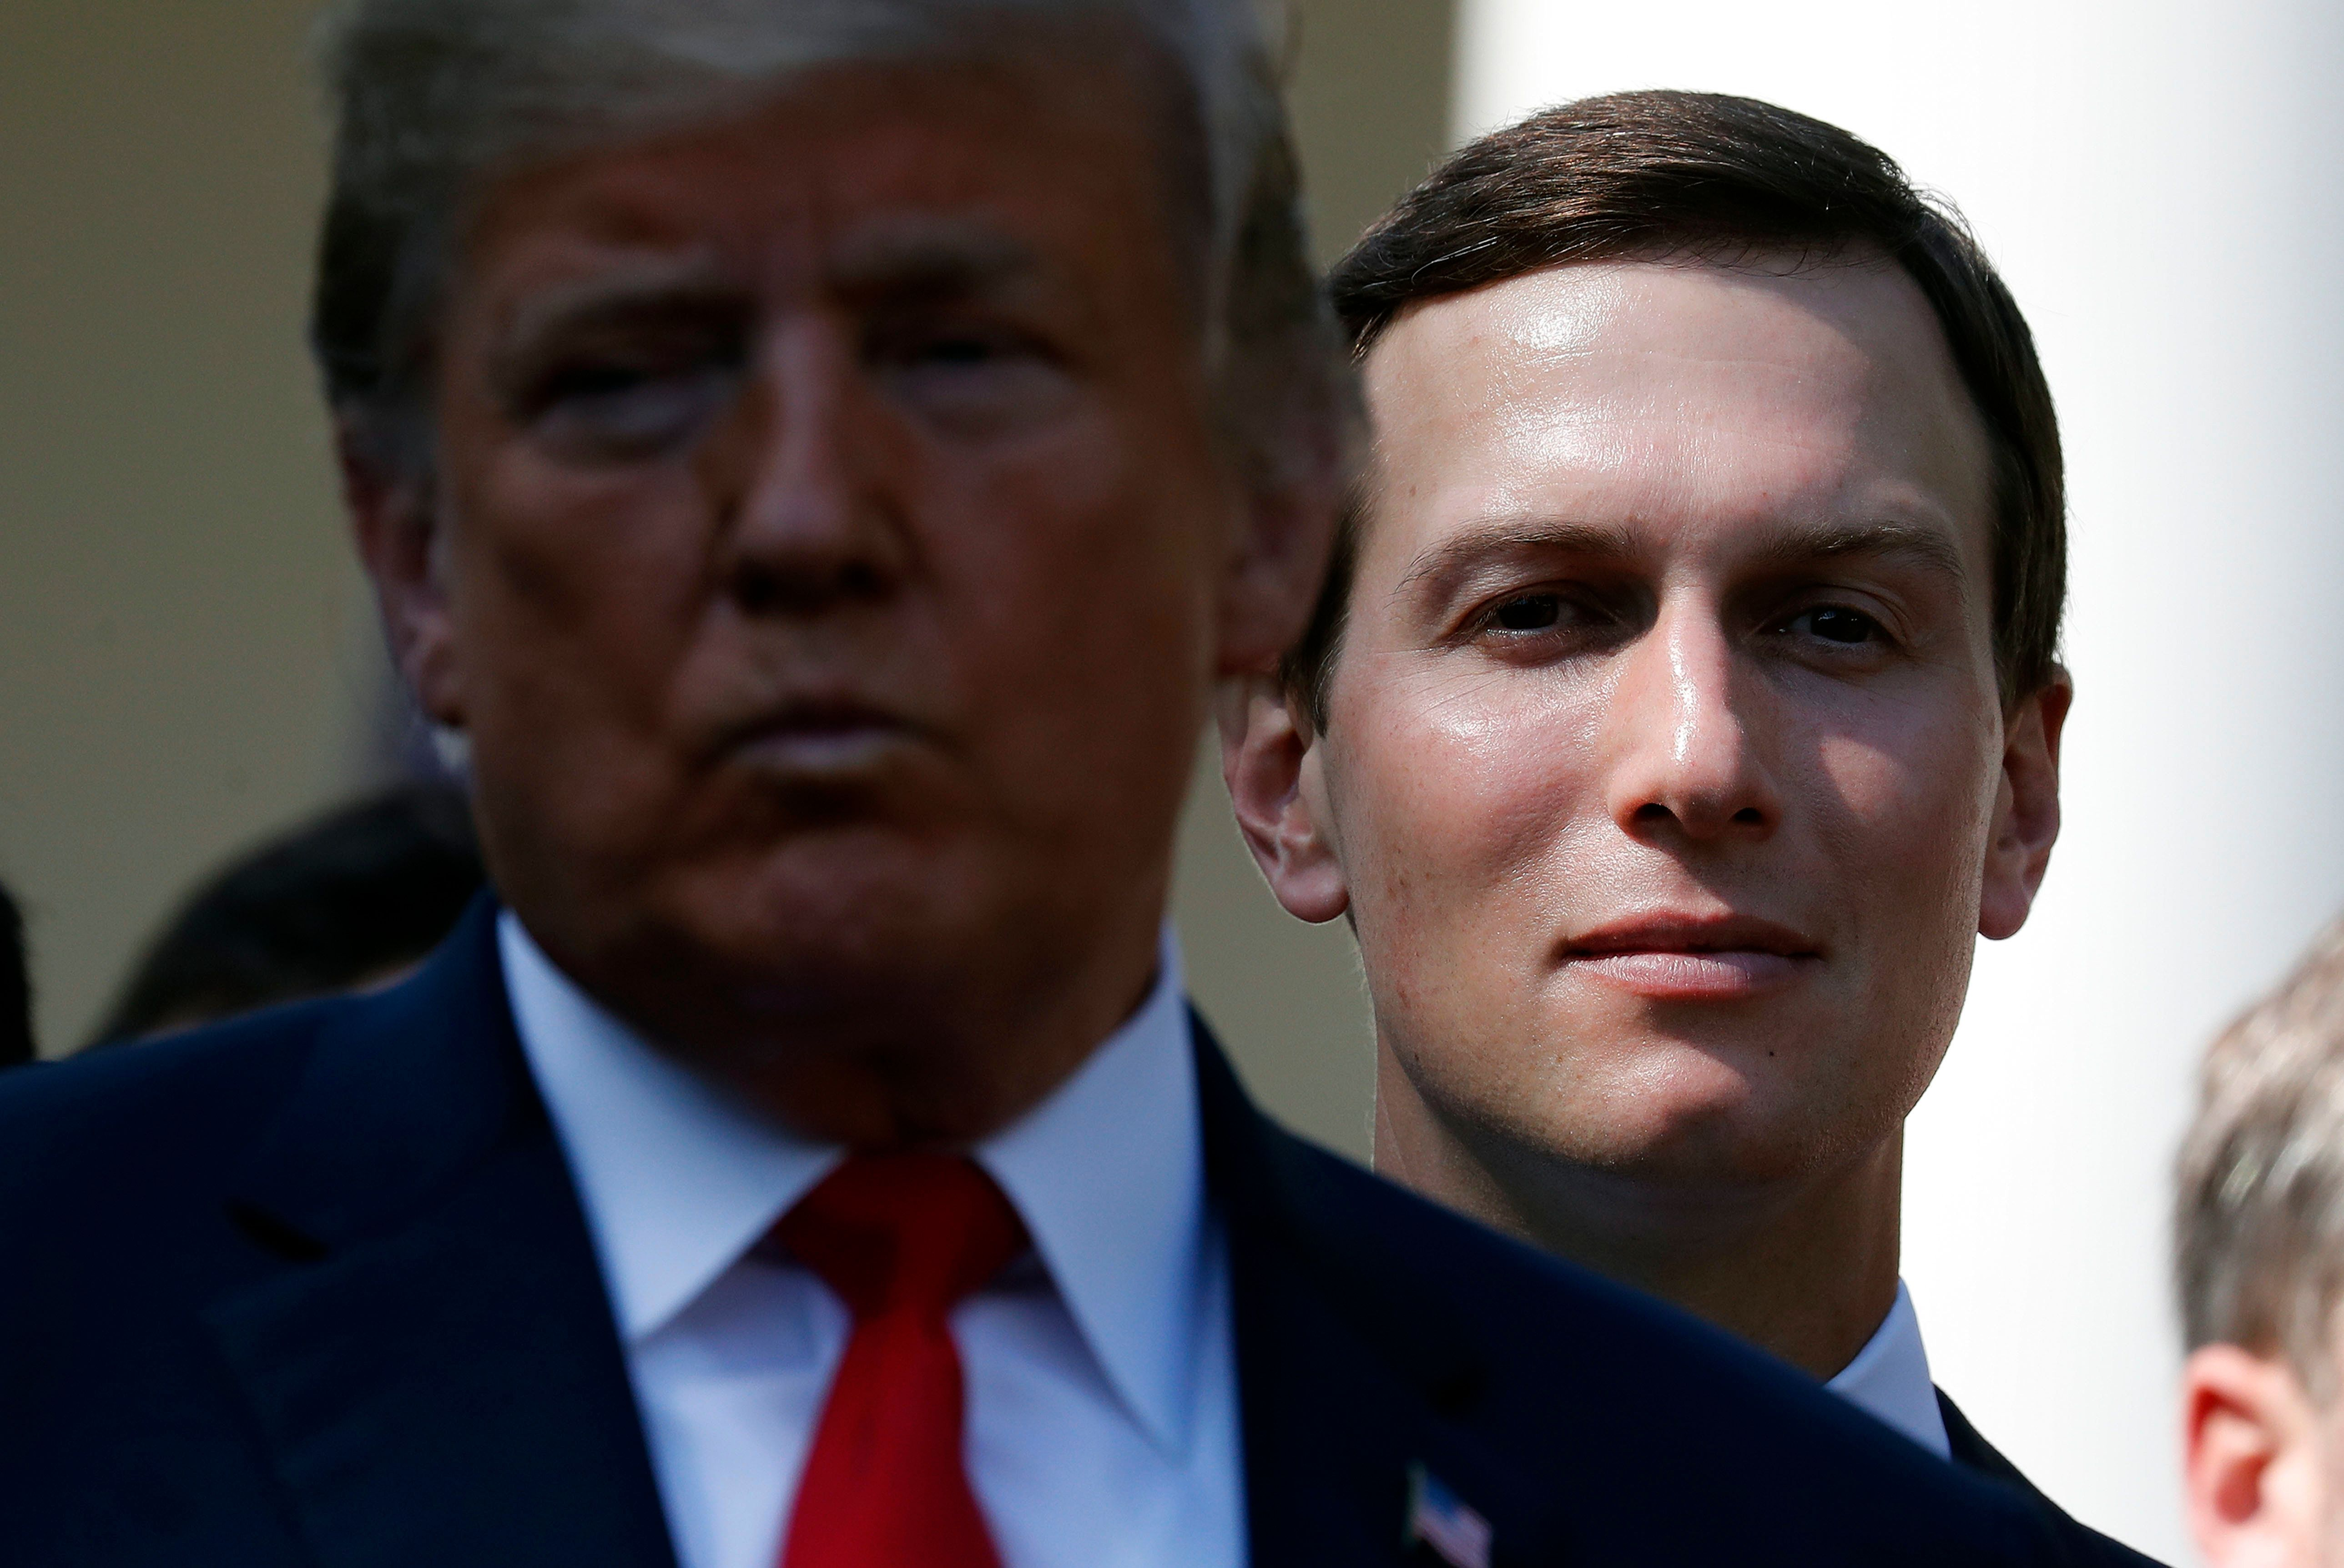 White House senior adviser Jared Kushner, right, stands behind President Donald Trump, left, during a news conference as he announces a revamped North American free trade deal, in the Rose Garden of the White House in Washington, Monday, Oct. 1, 2018. The new deal, reached just before a midnight deadline imposed by the U.S., will be called the United States-Mexico-Canada Agreement, or USMCA. It replaces the 24-year-old North American Free Trade Agreement, which President Donald Trump had called a job-killing disaster. (AP Photo/Pablo Martinez Monsivais)